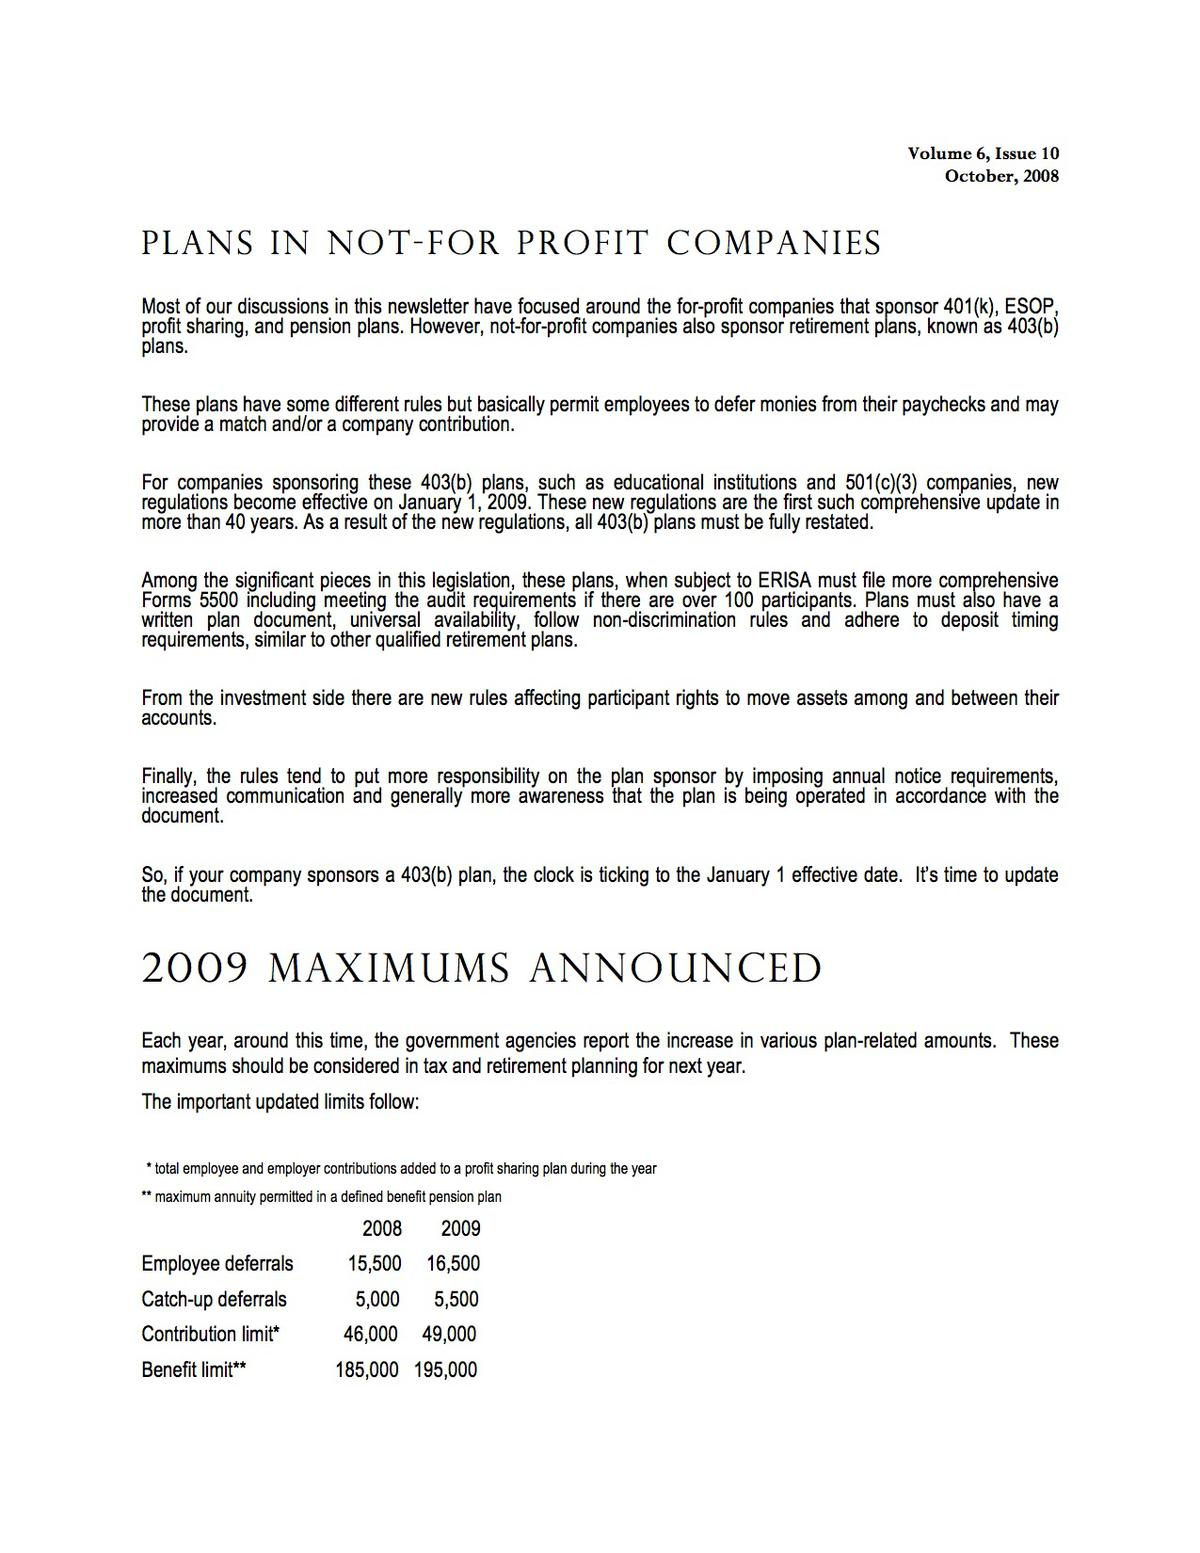 2009 Maximum Announced